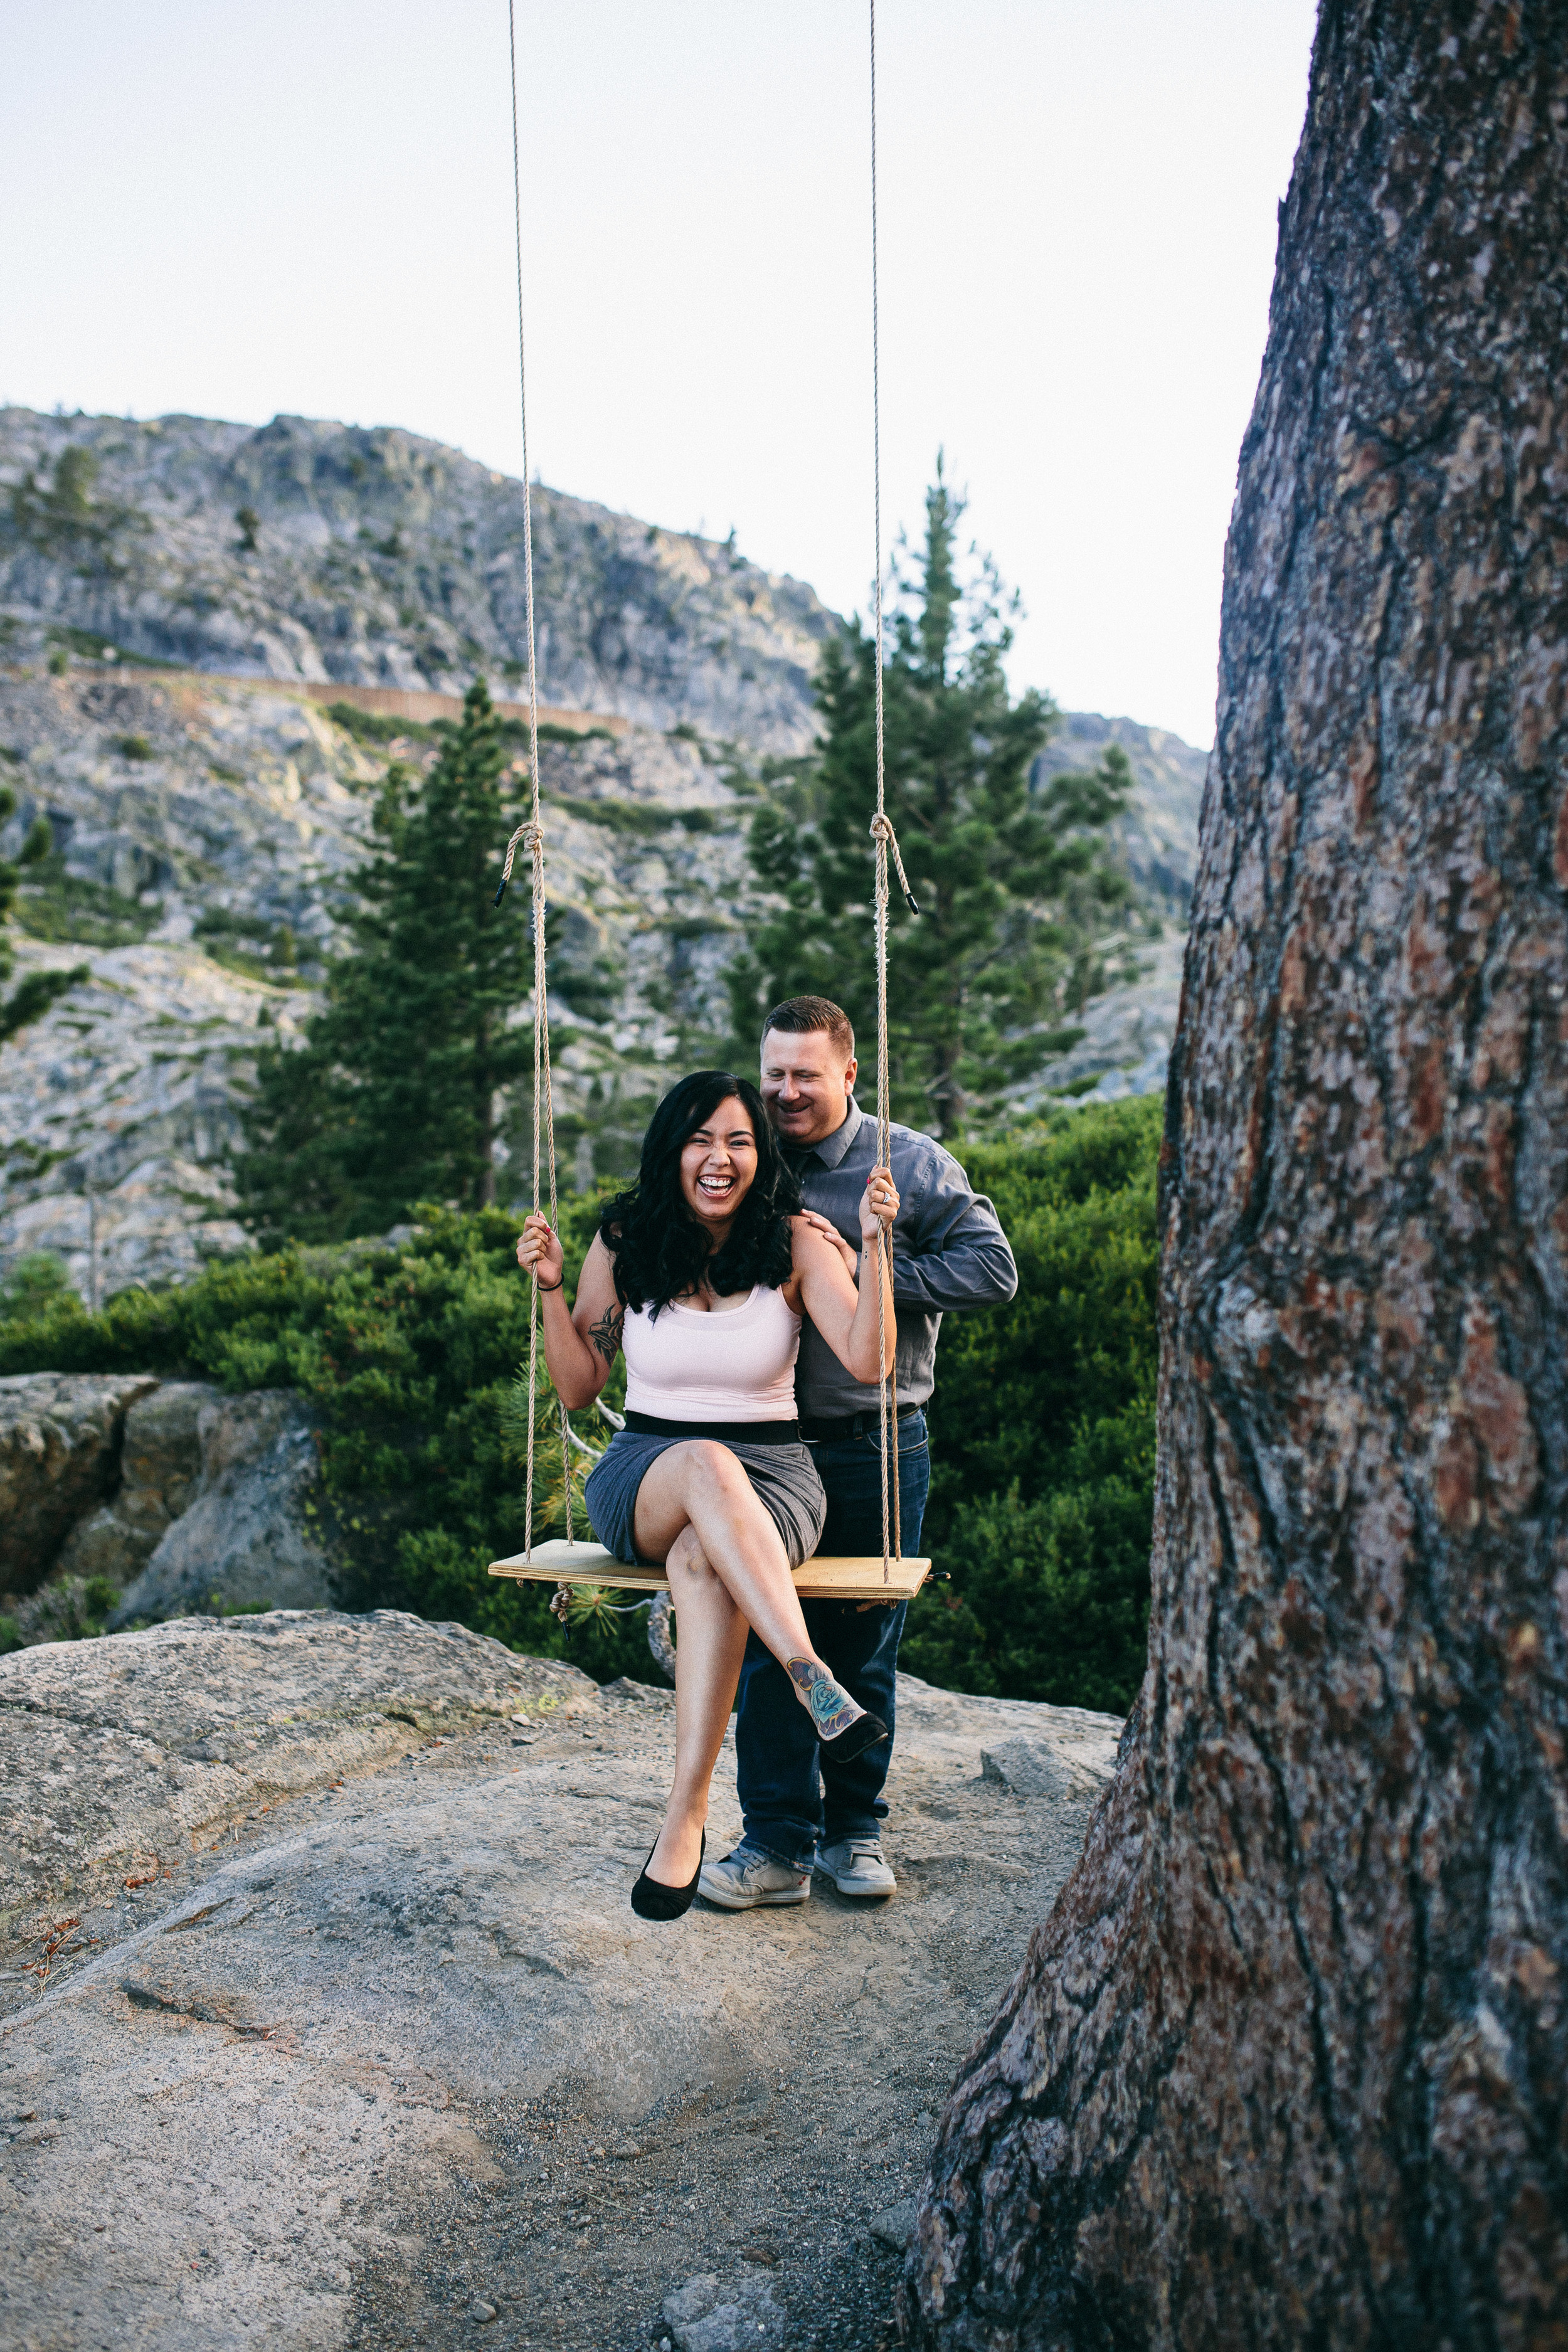 Clint & Veronica Engaged - Corrie Mick Photography-1.jpg